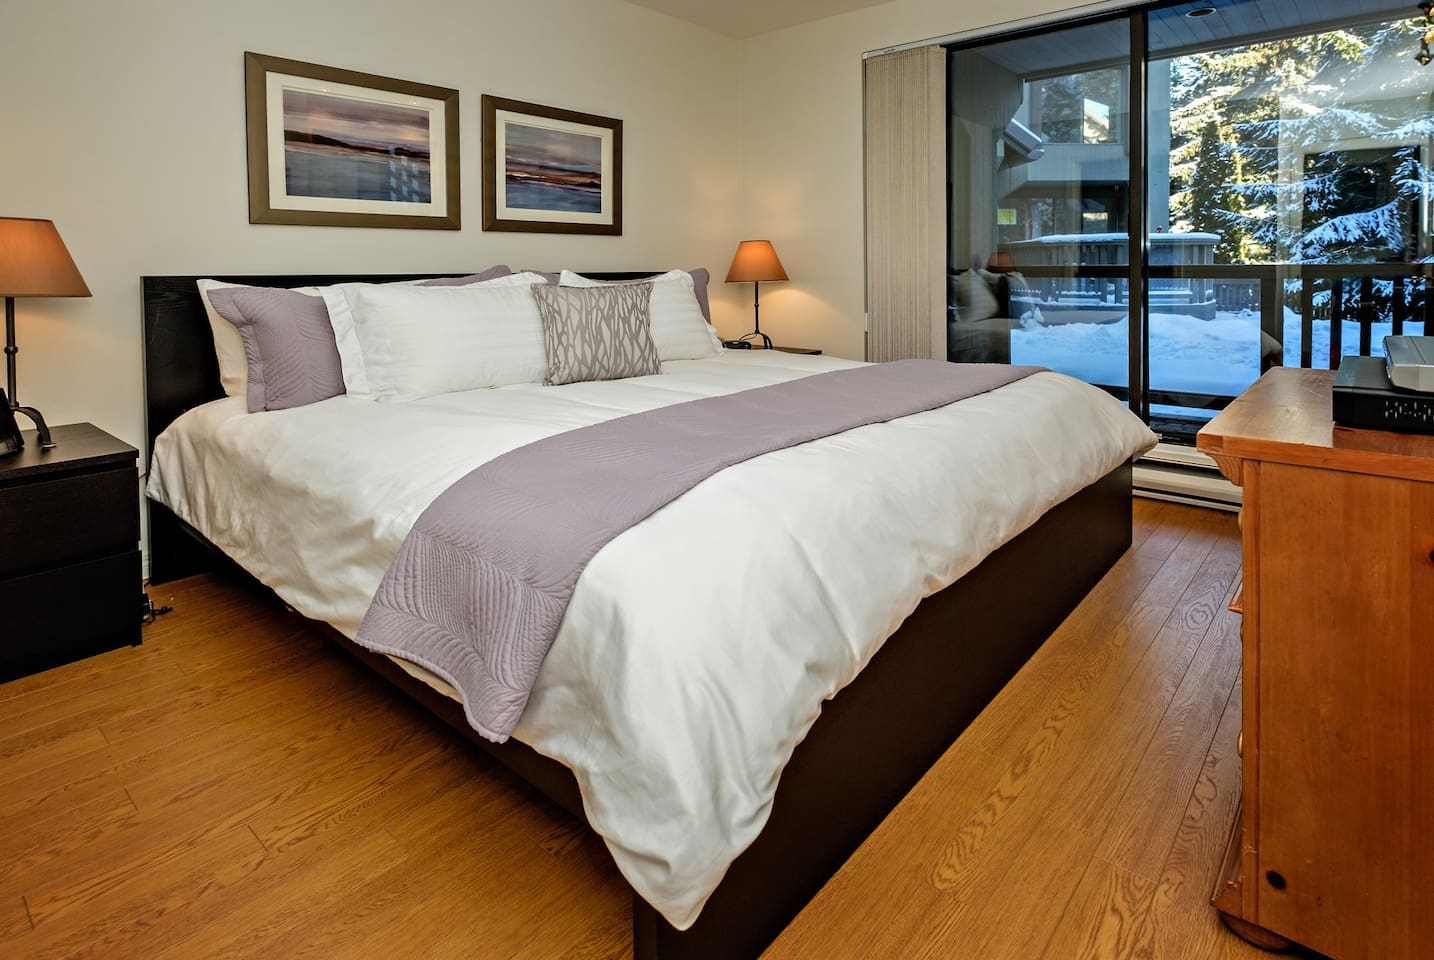 Master bedroom with new king bed, new Leesa king mattress, ensuite bathroom and 48 inch flatscreen HDTV